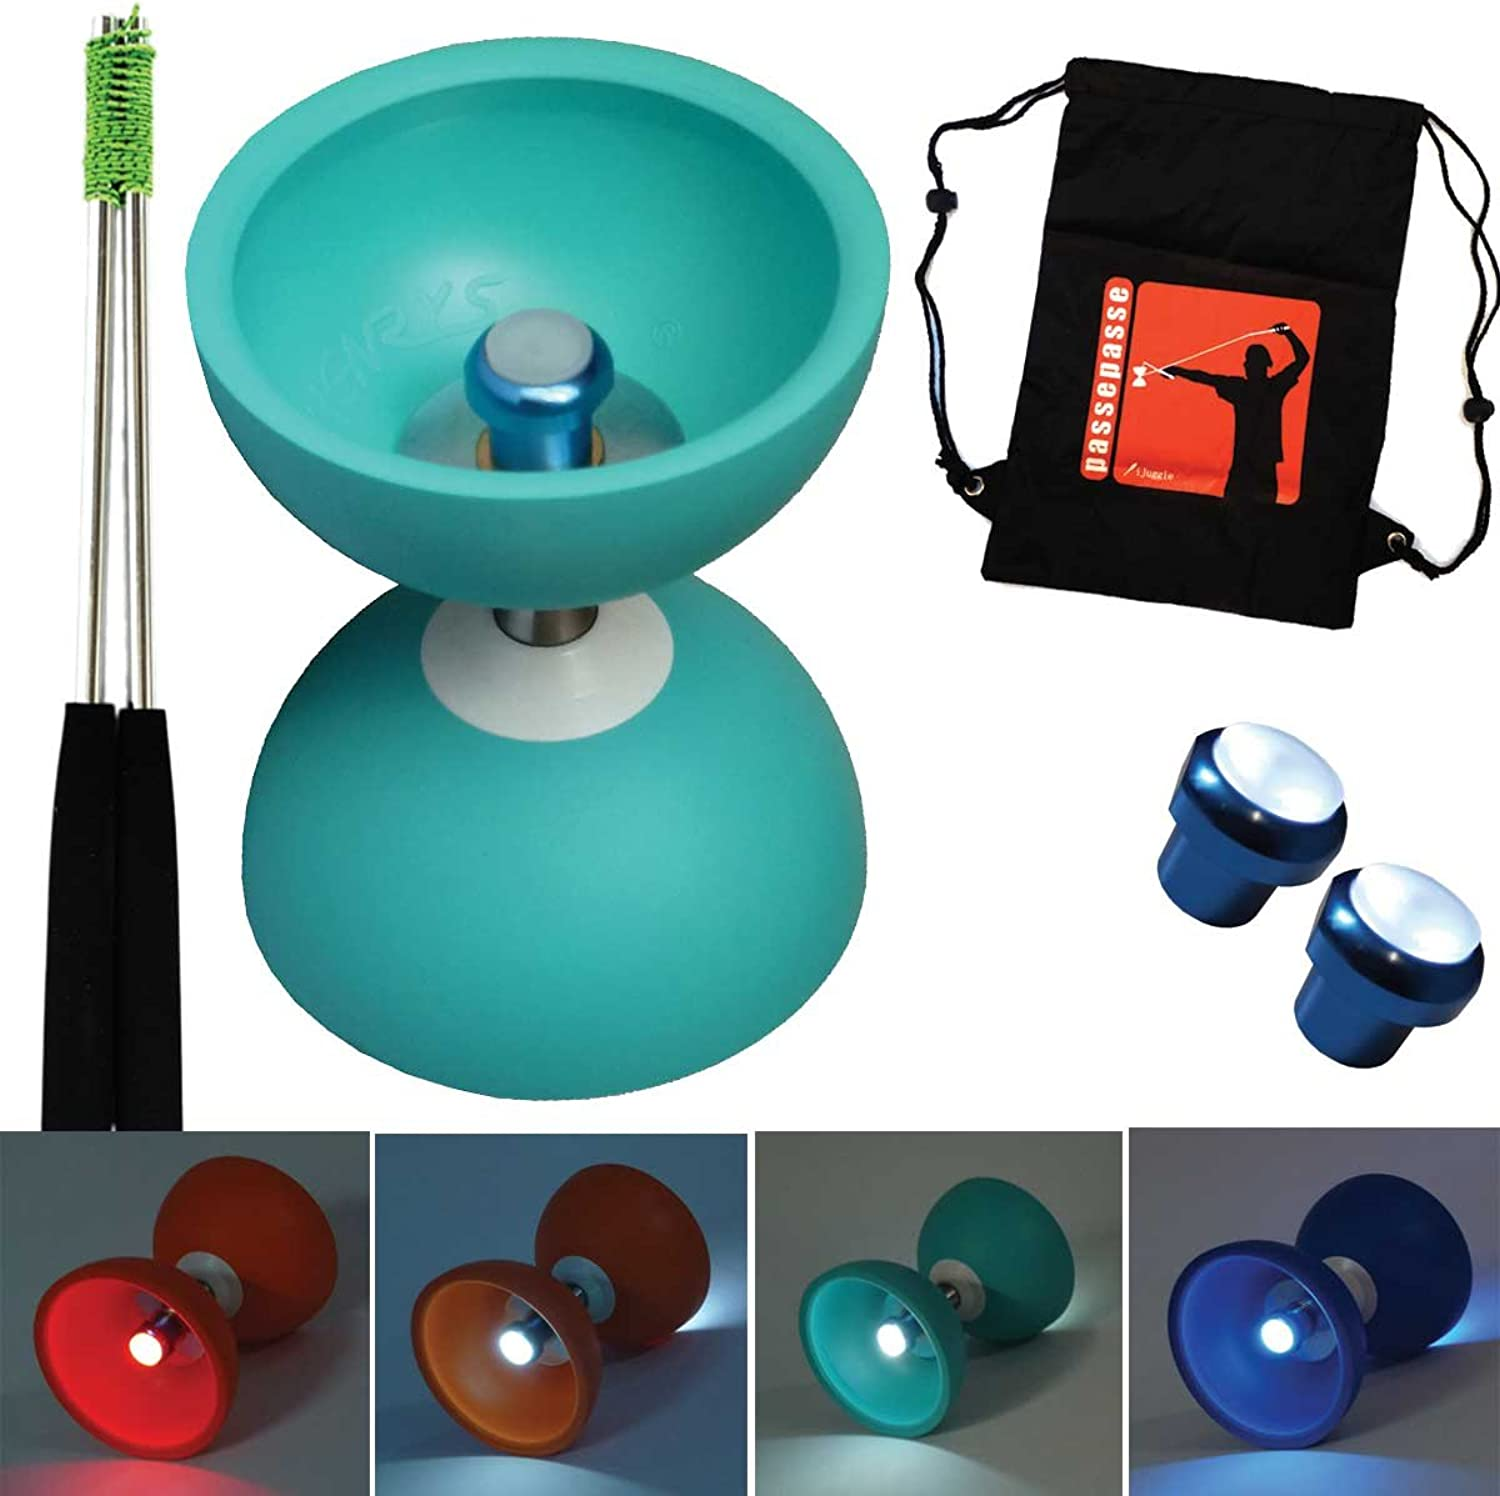 Henrys Turqouise Diabolo Jazz FREE Bearing Axle with Night & Day M6 nuts limited edition with Aluminium control sticks and bag